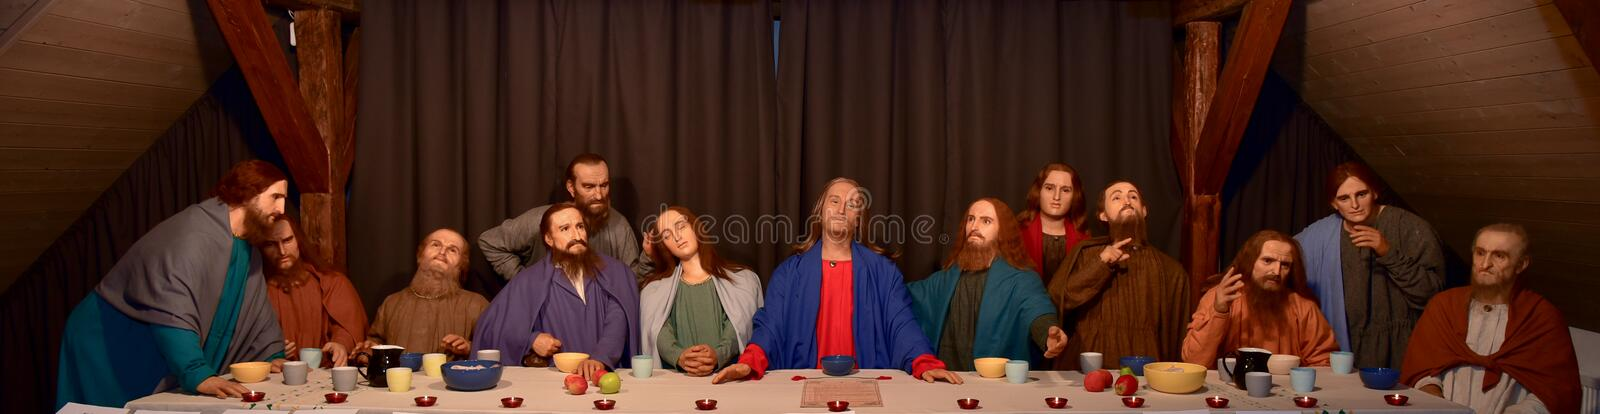 The last supper. Wax figures displaying the last supper of Jesus. The figures belong to Saint Peterburg Wax museum and are exhibited in travelling exhibition in royalty free stock image